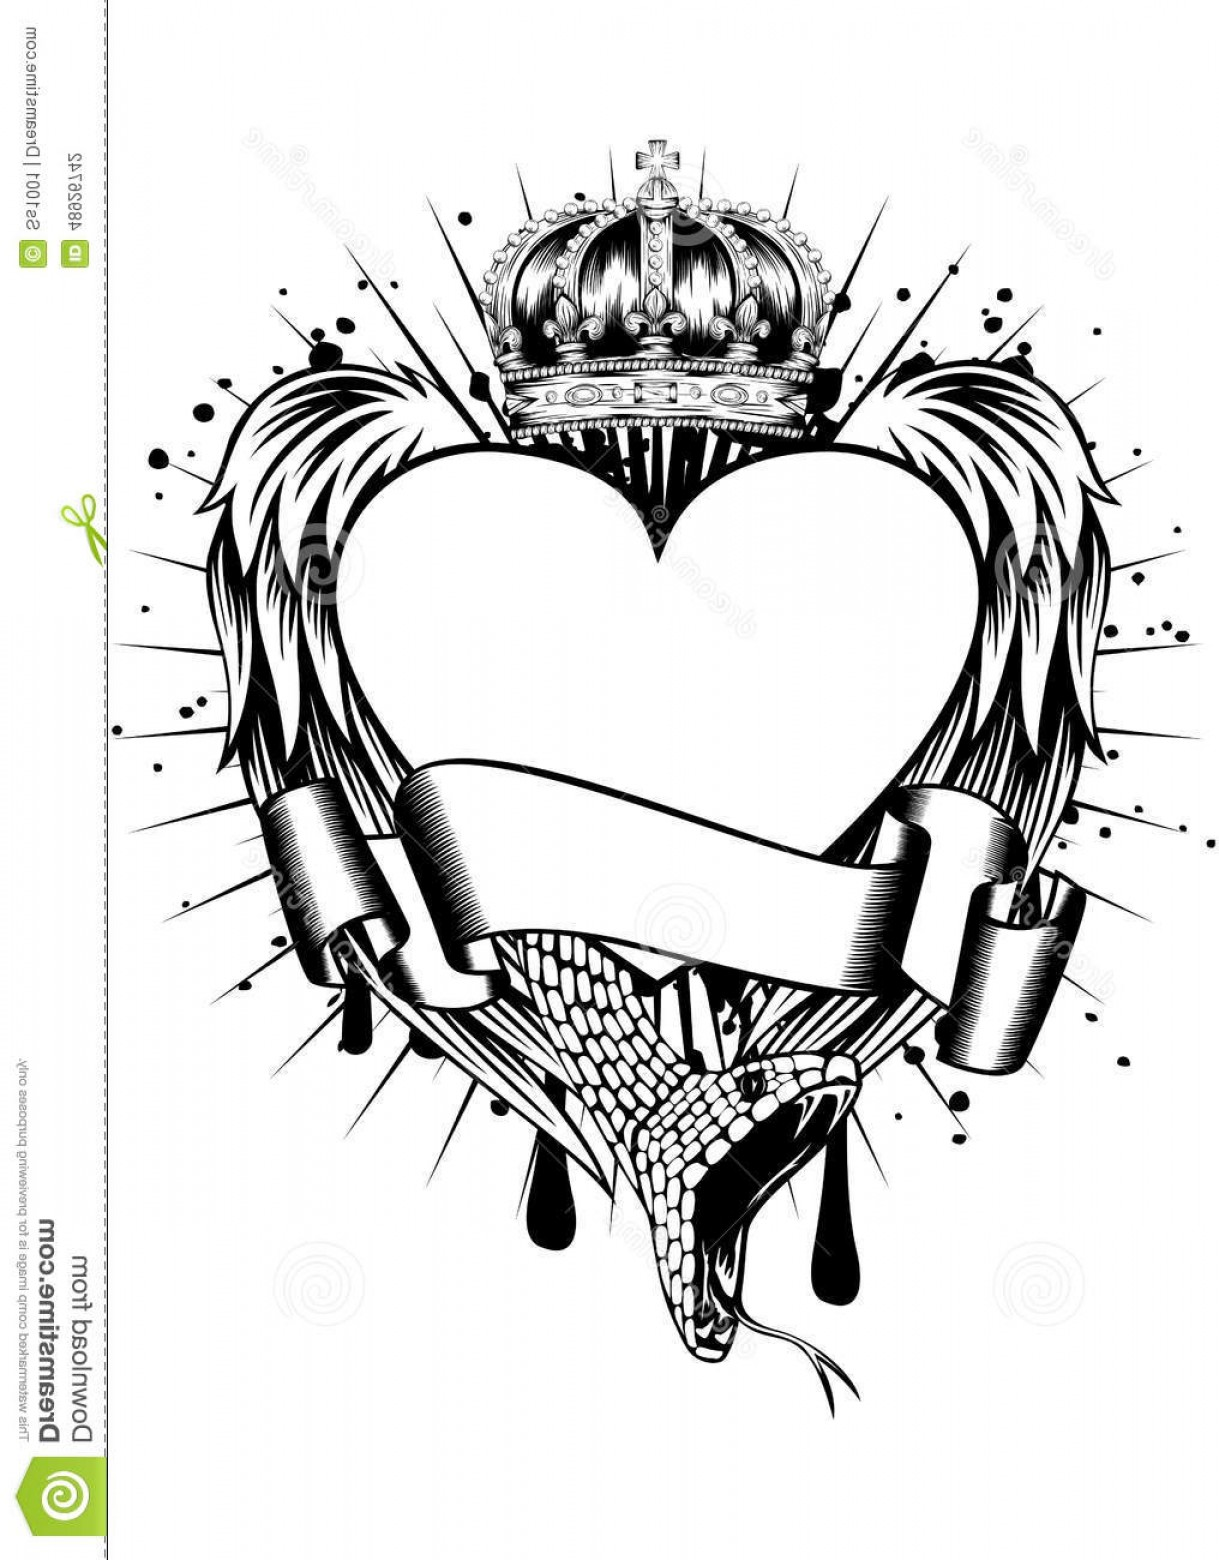 Snake Crown Vector: Stock Illustration Heart Wings Corona Abstract Vector Illustration Frame Snake Crown Image